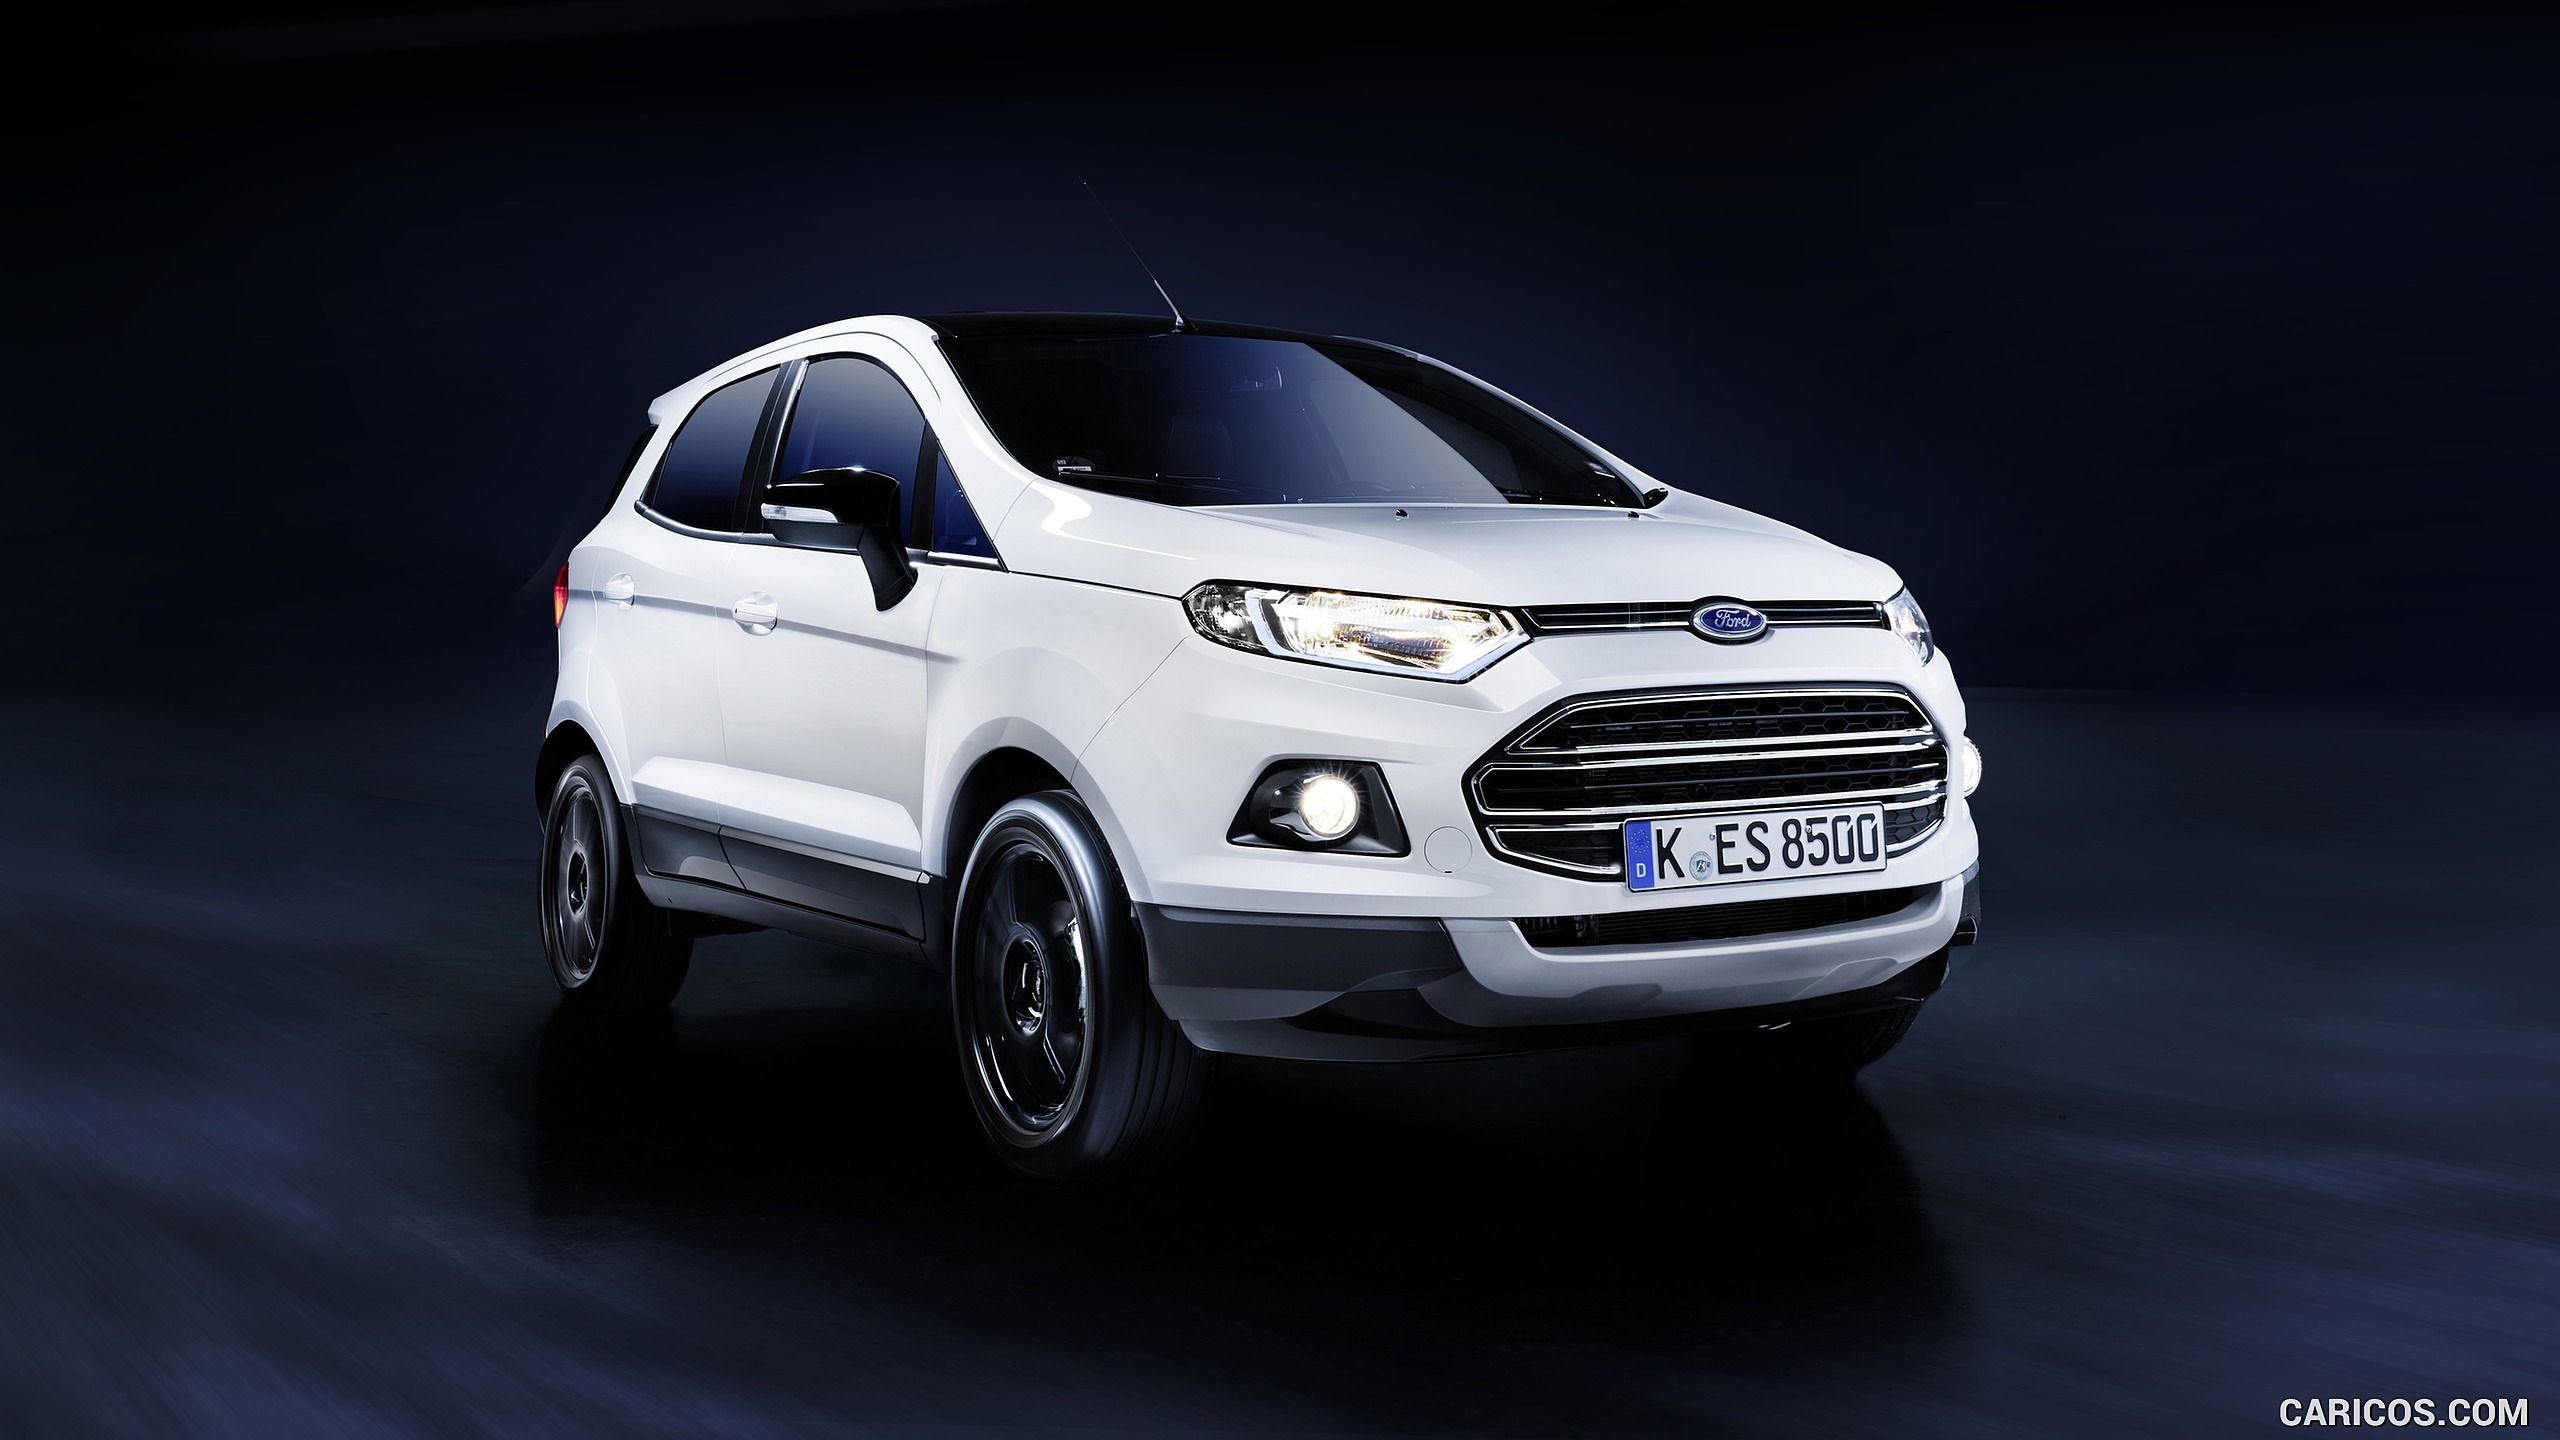 2016 Ford Ecosport Wallpaper Ford Ecosport Ford Cars